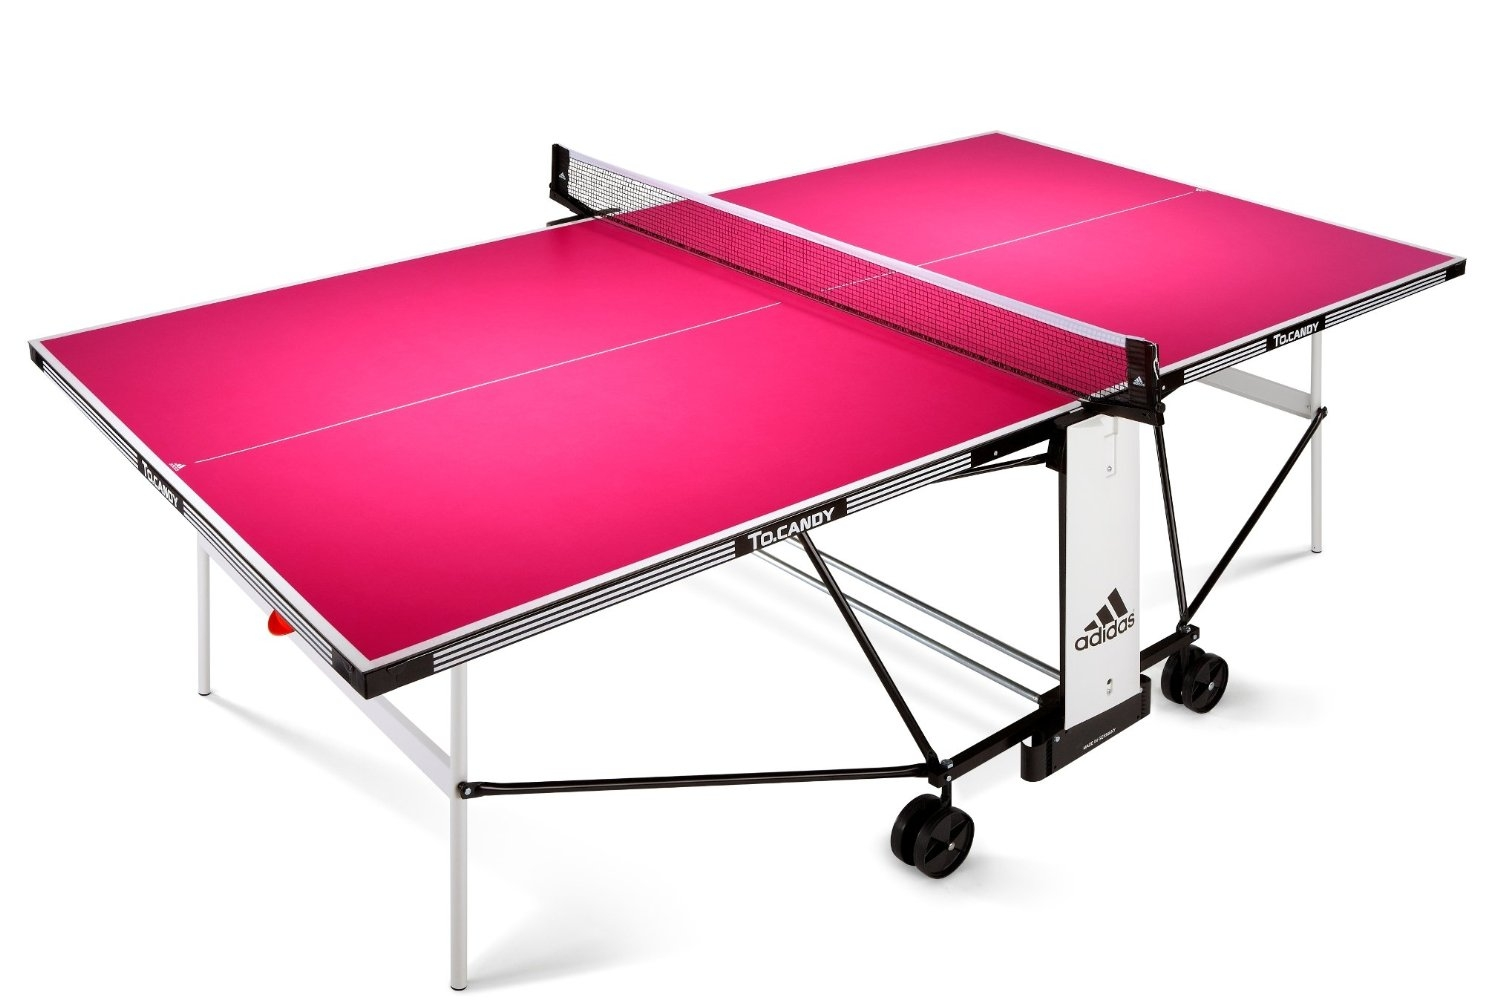 adidas tennis de table raquette de tennis de table rose. Black Bedroom Furniture Sets. Home Design Ideas